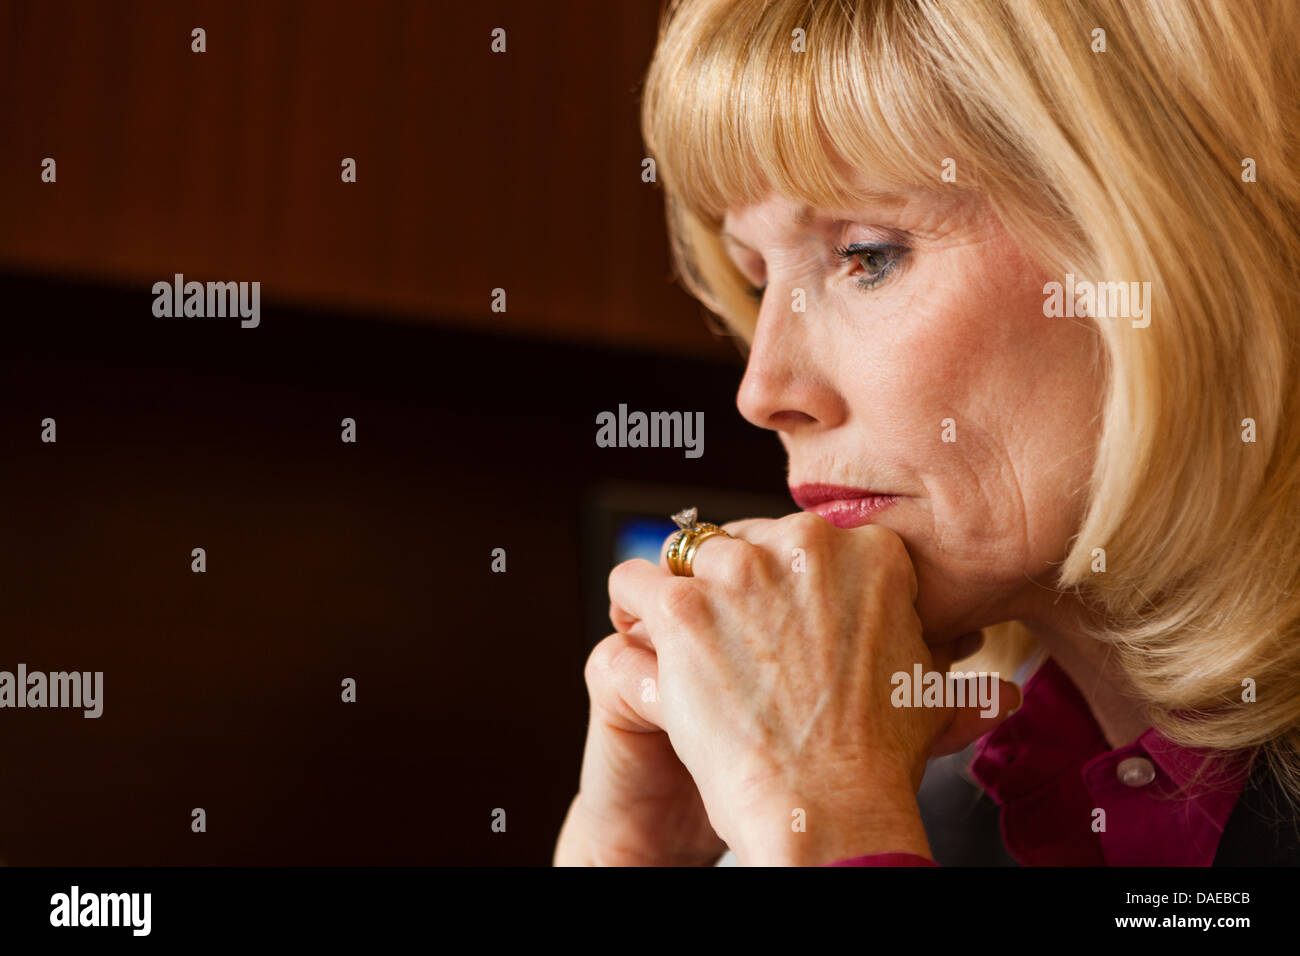 Close up portrait of mature woman looking pensive - Stock Image